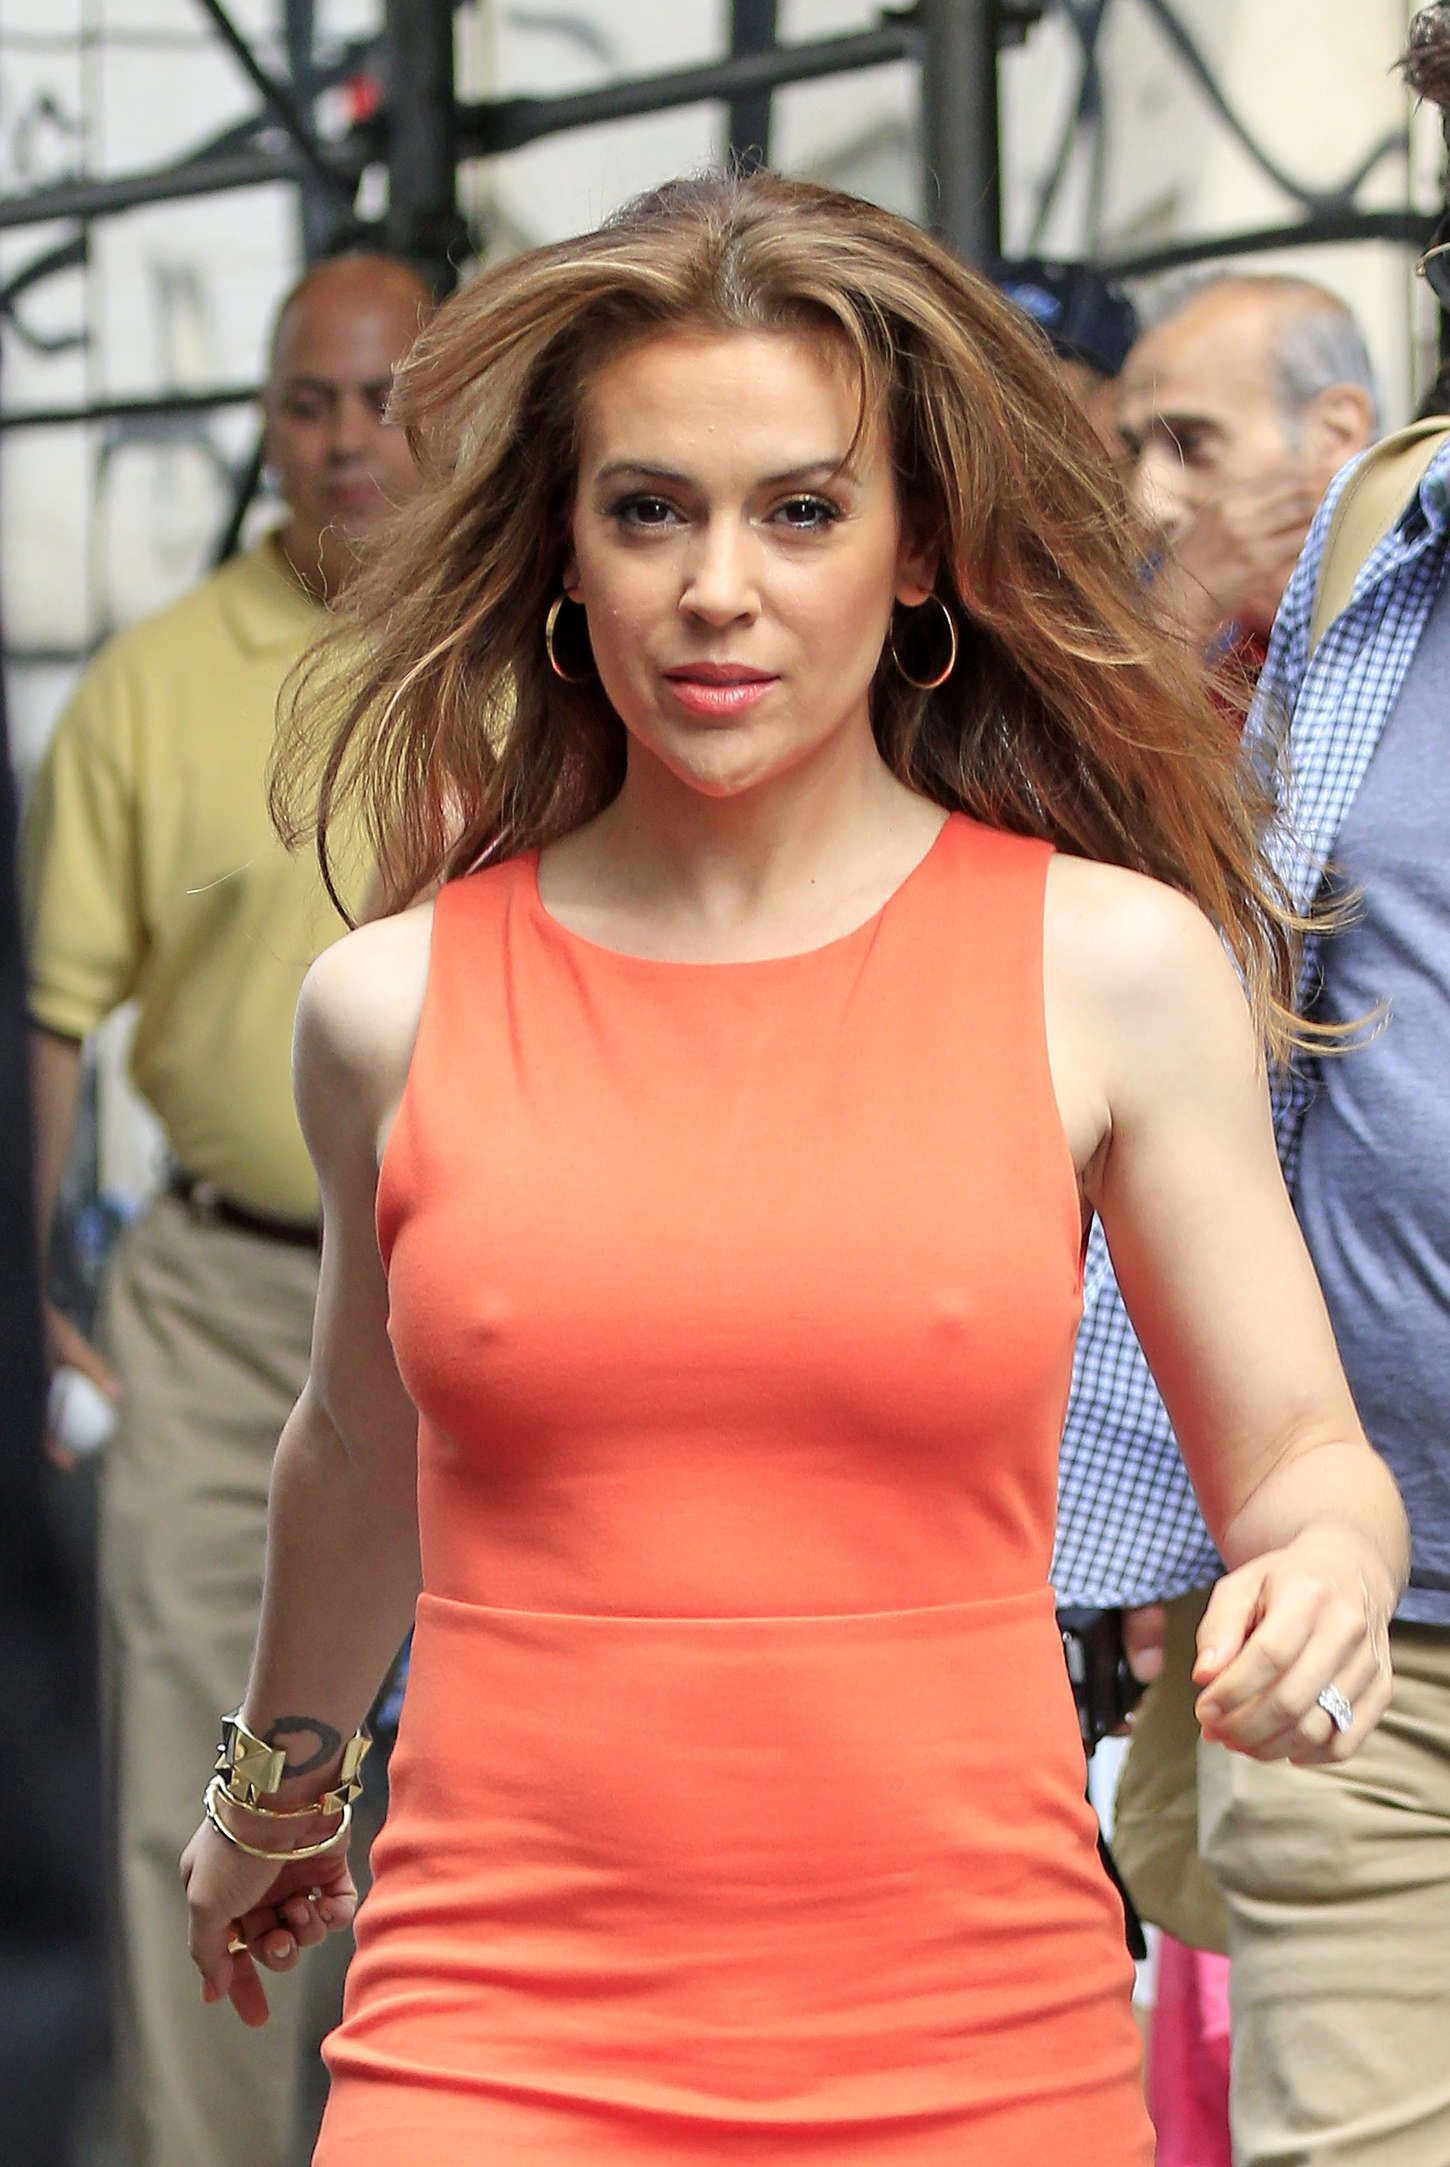 These are sexy Alyssa Milano photos and GIFs. Alyssa Milano is one of the hottest women in movies and on TV. Hot pics of Alyssa Milano's body near naked / nude in a bikini and more (or less. Alyssa Milano Hot, Alyssa Milano Charmed, Hollywood Actresses, Hot Actresses, Tight Dresses, Hottest Photos, Beautiful Actresses, New York City, Athletic Tank Tops